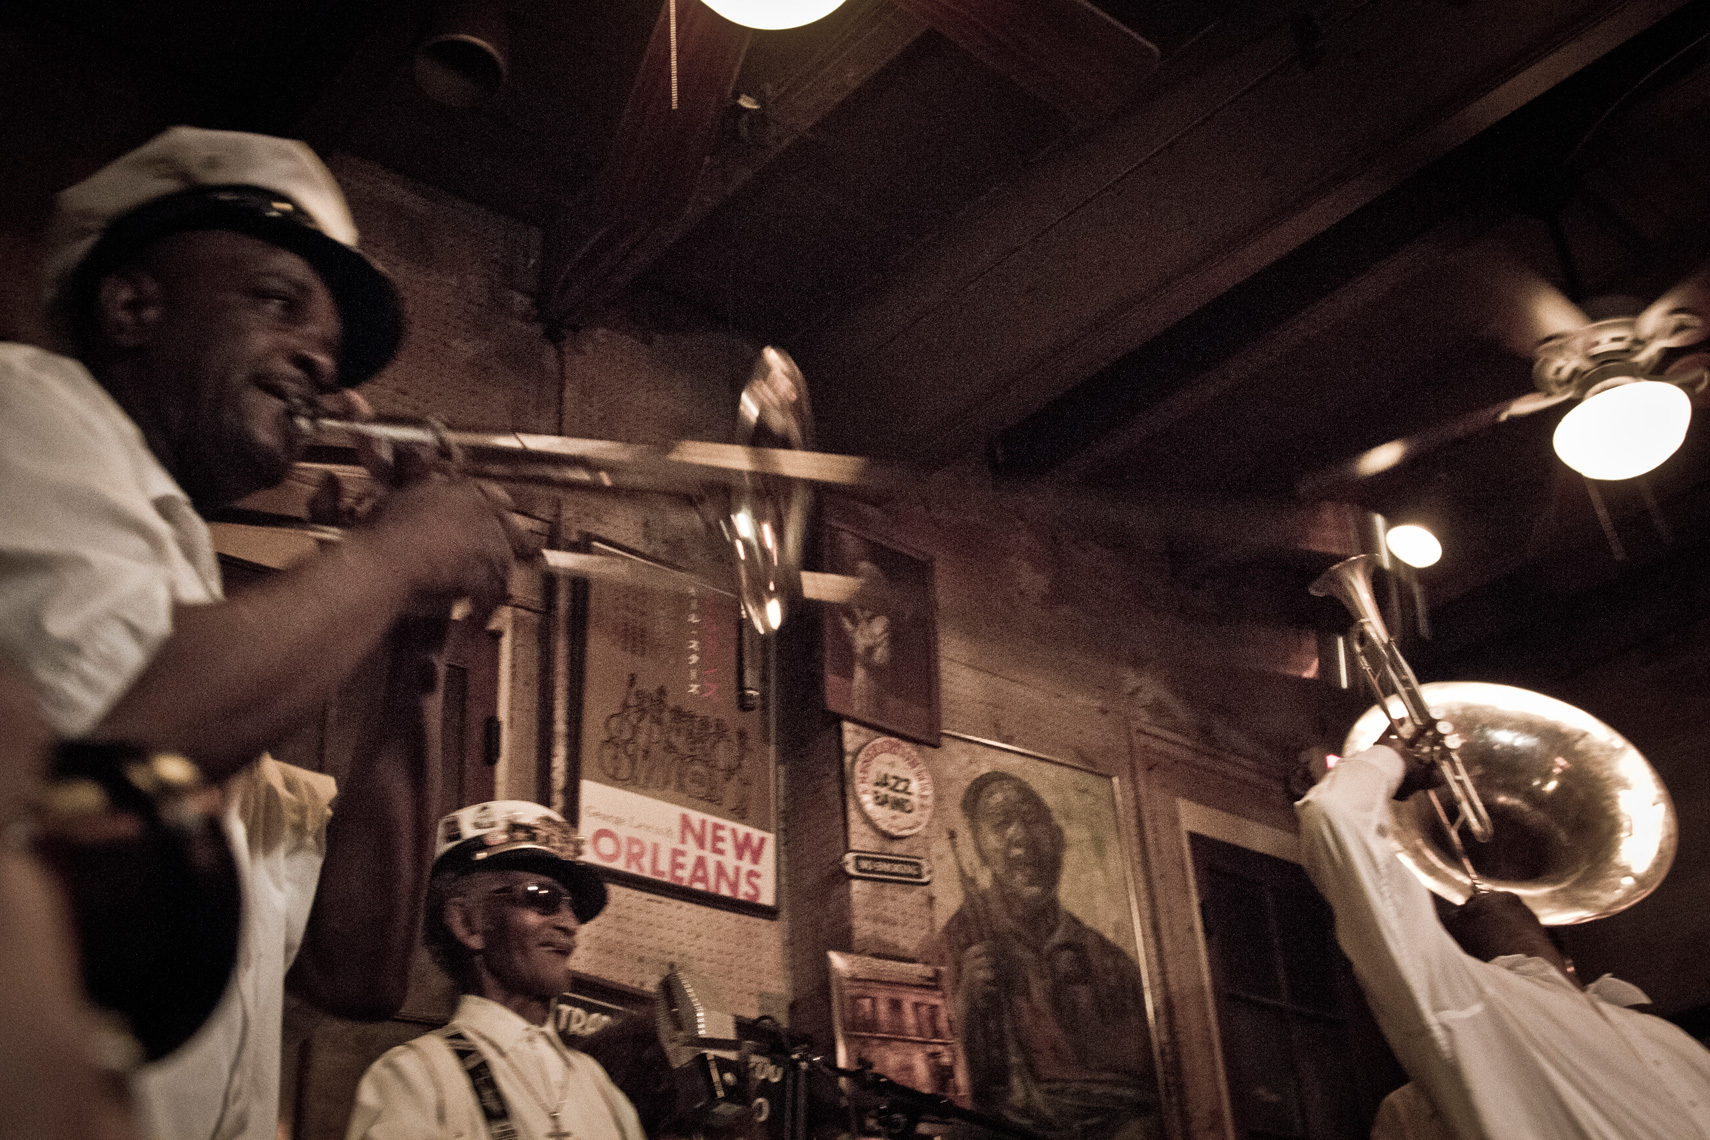 Treme Brass Band, Preservation Hall, New Orleans